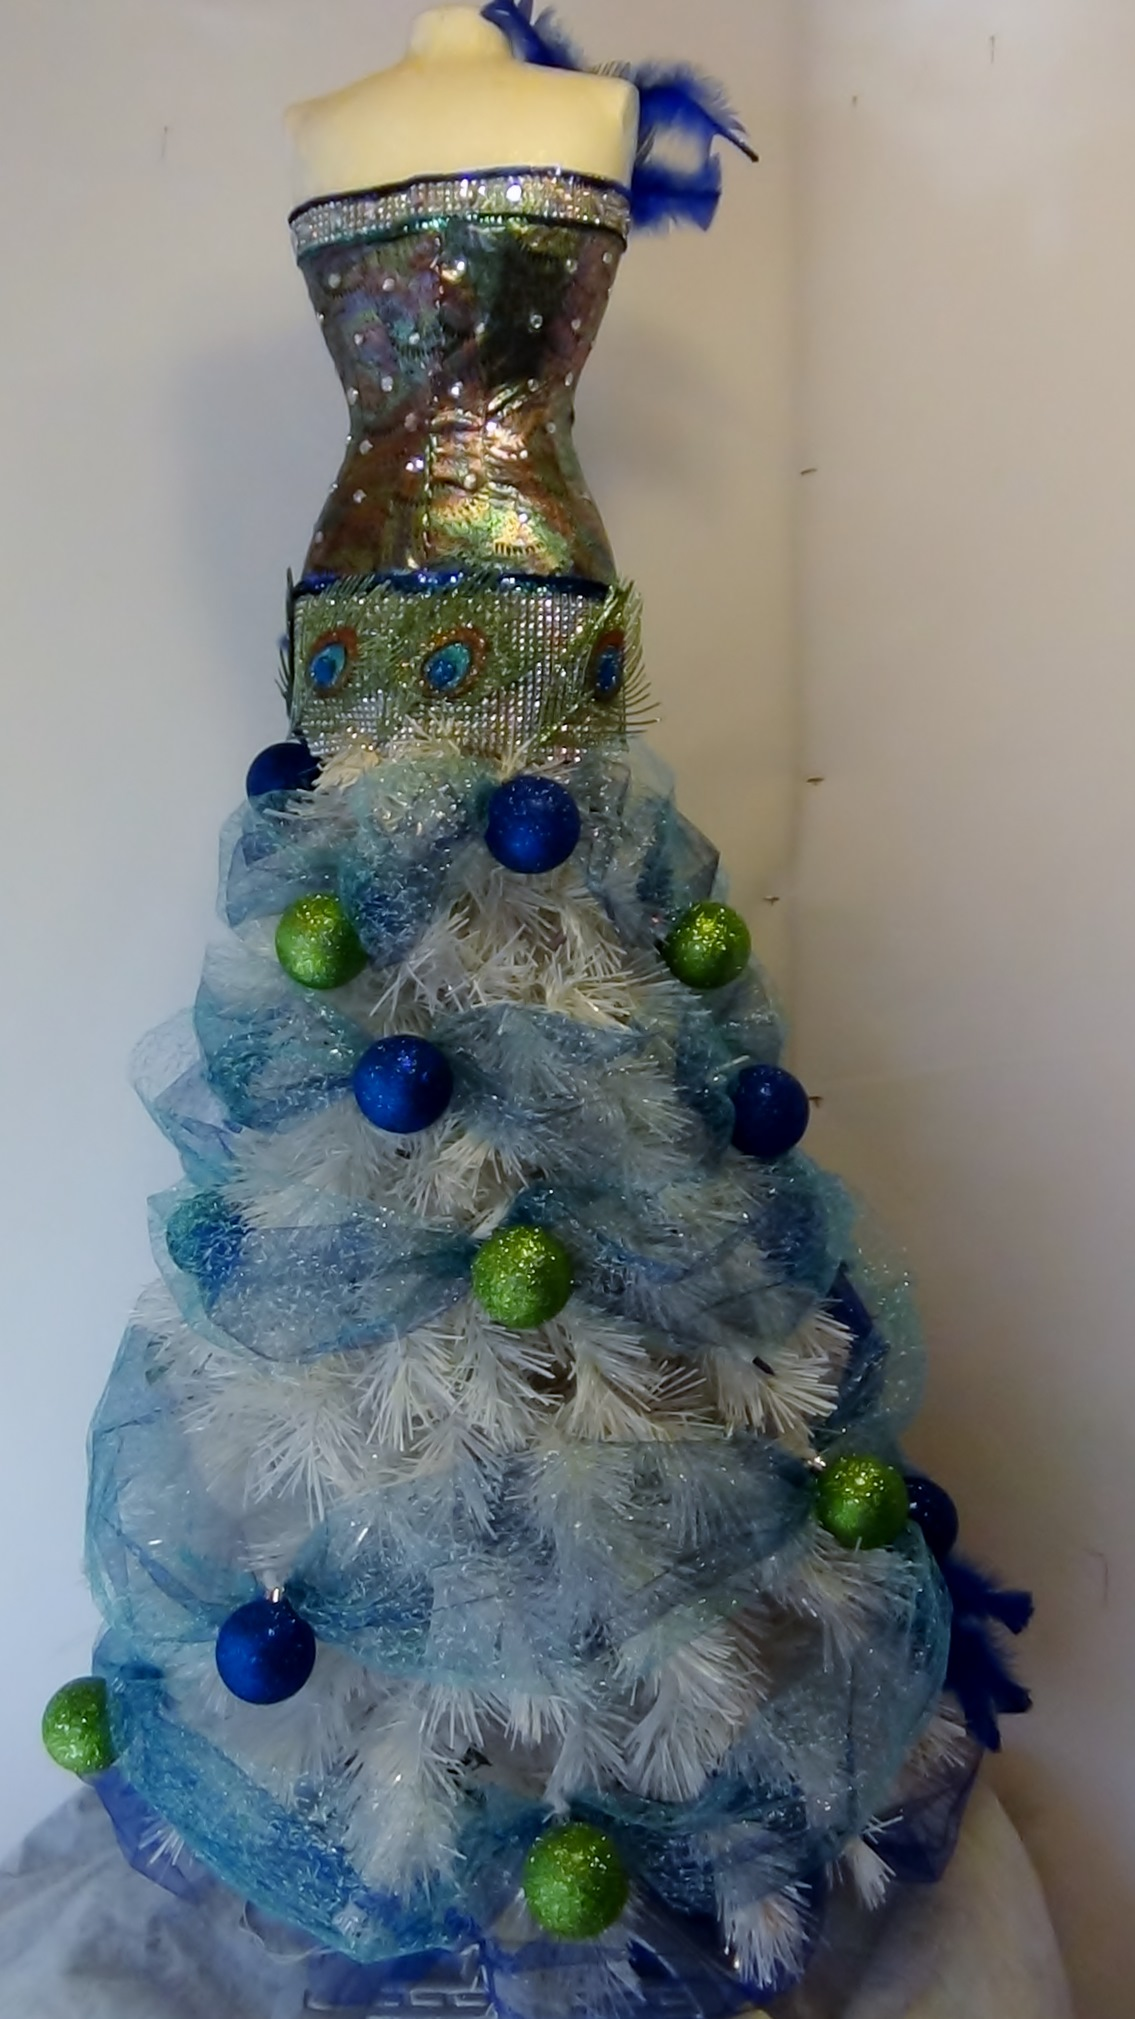 Mannequin Christmas Tree With A Peacock Theme - Seams And ...